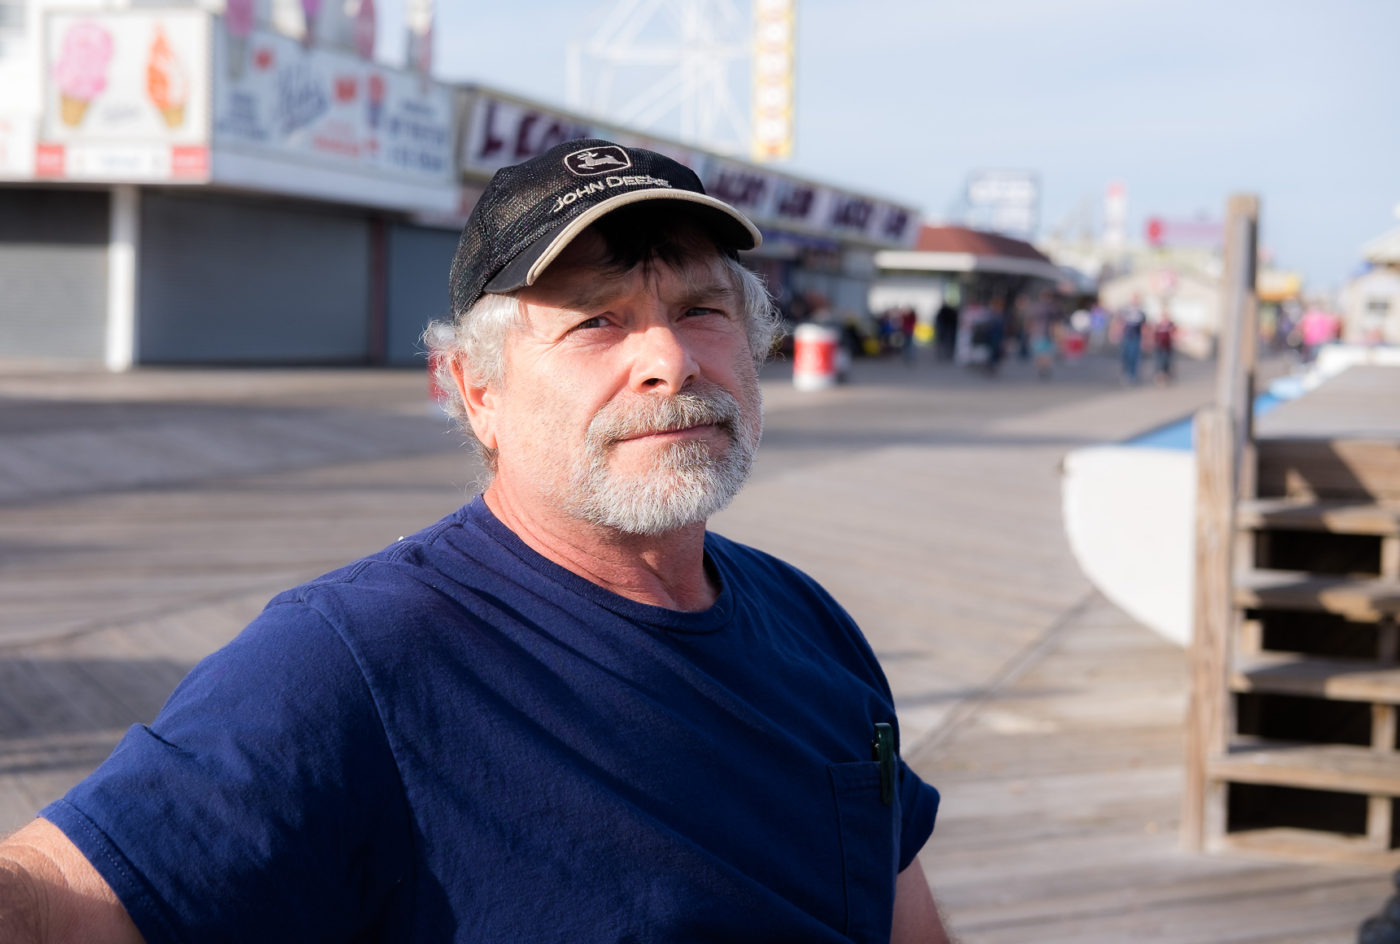 Portraits of the Jersey Shore Seaside Heights Fatherhood Challenges Teenager Raising Sons